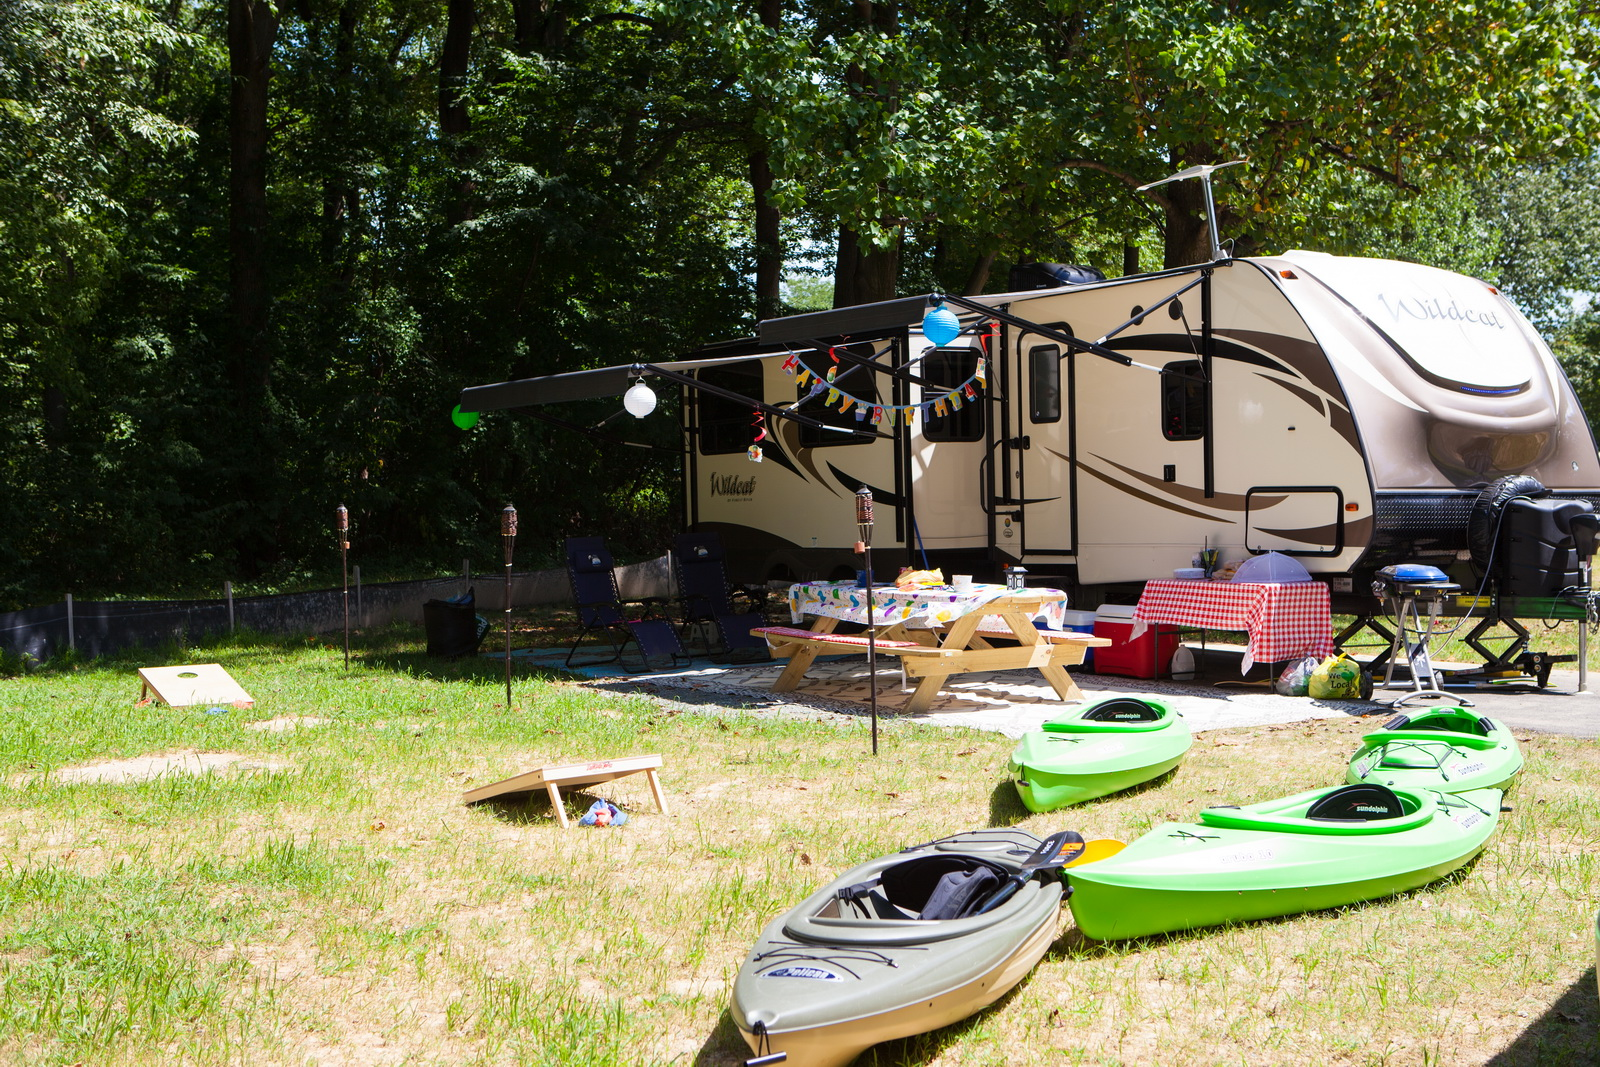 Camping at Lums Pond State Park